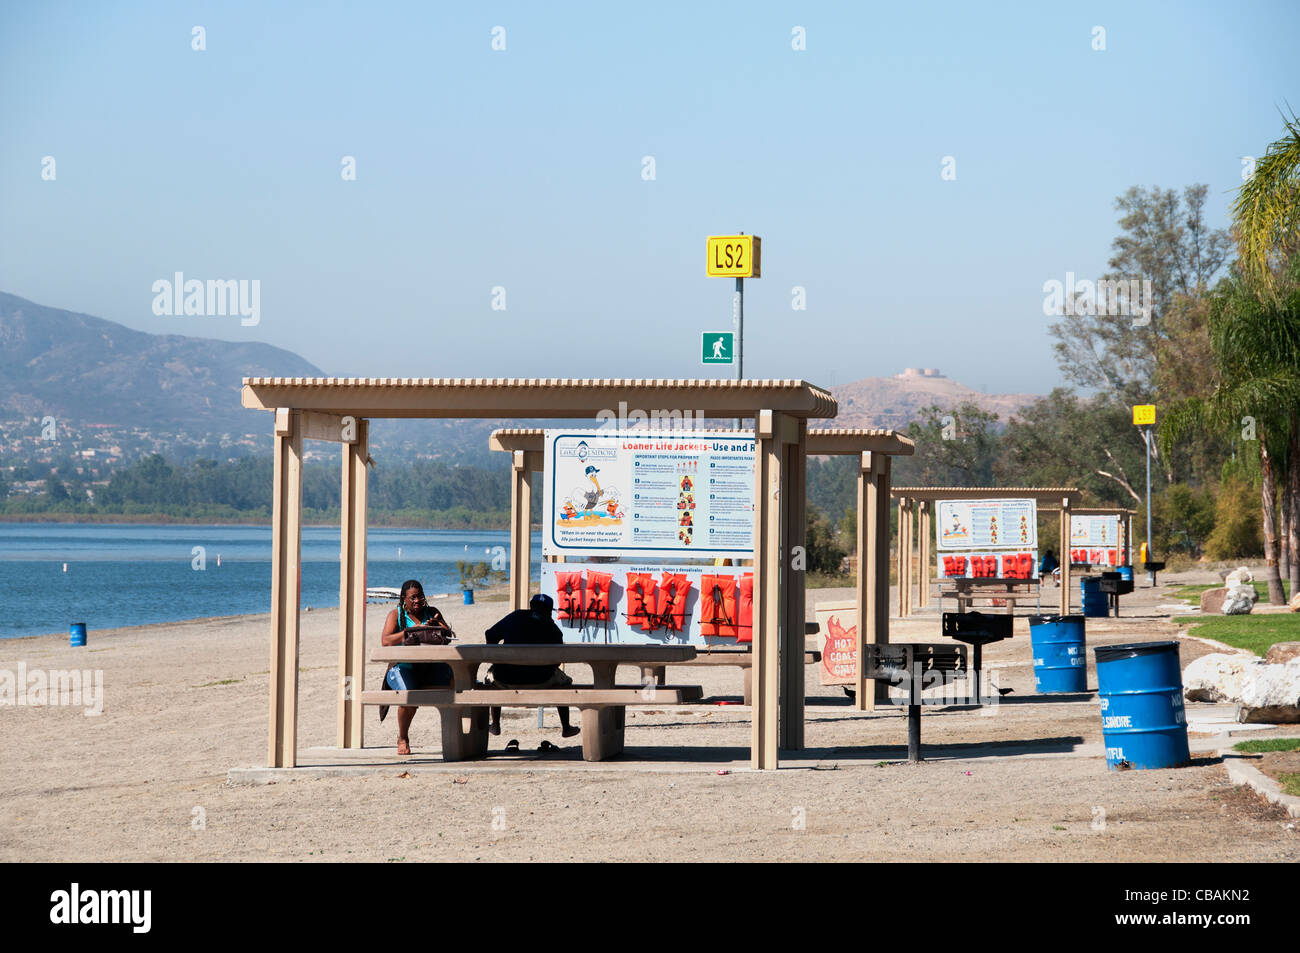 Lake Elsinore Beach California United States of America American - Stock Image